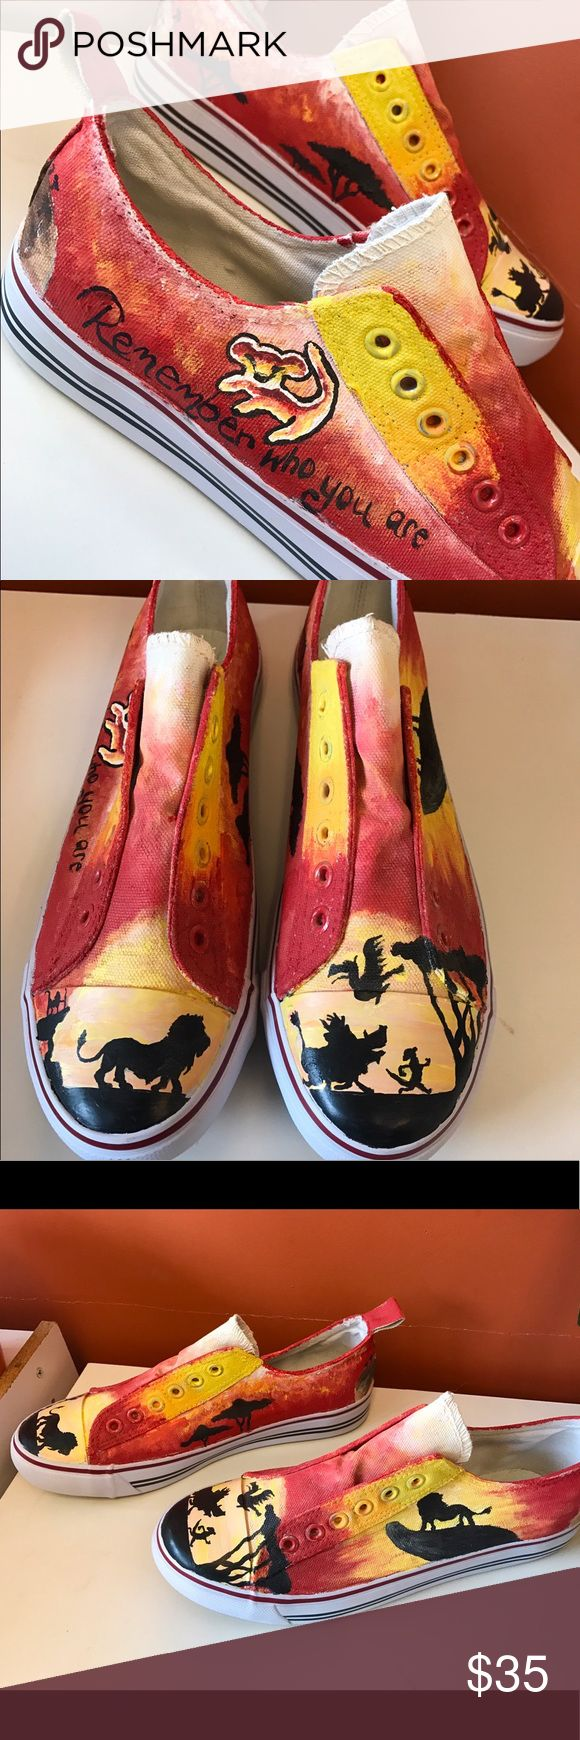 Hand-Painted Lion King Shoes!! Brand NEW!! ❤ Hand-Painted (by me) Lion King Shoes. NEVER WORN!! They are a size 8 but are a bit snug because of the paint. These will need to be sprayed with weather proof if you plan to wear them a lot. Painted them one day just for fun but never wore them! The brand is Epic Step but they look like converse without laces! ❤️ Will be shipped in a shoe box, they didn't come in one so it will not be an original box! Disney Shoes Sneakers